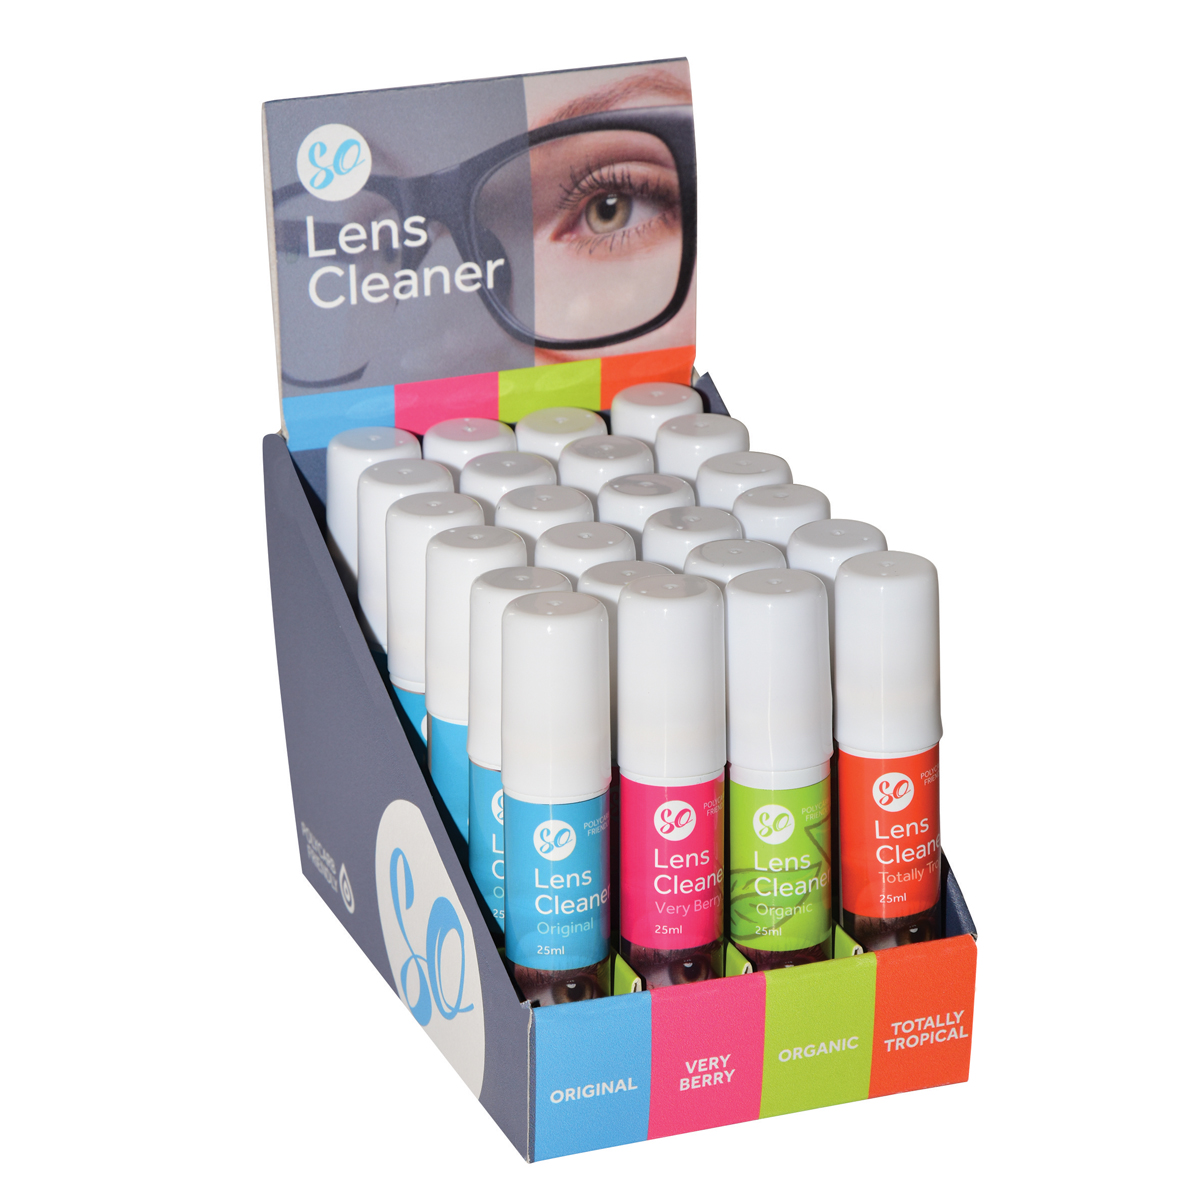 Lens Cleaners